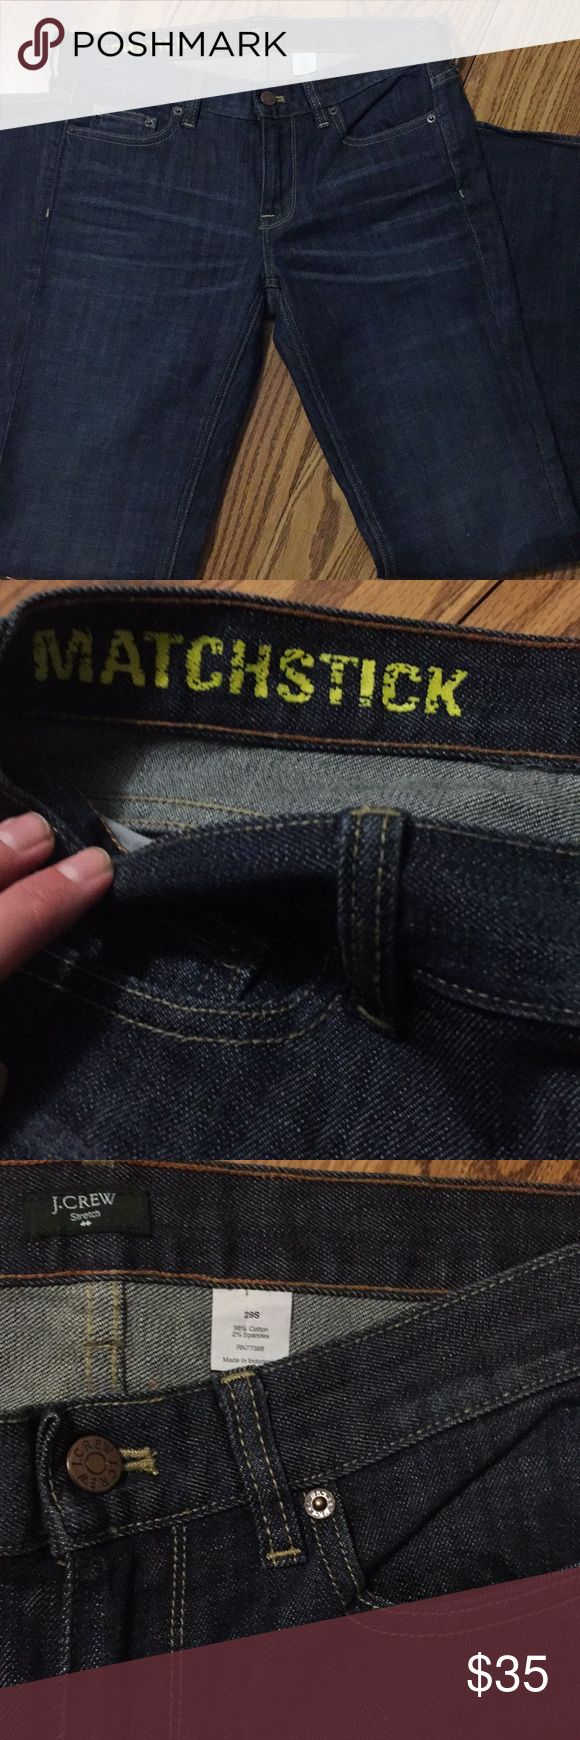 "J. Crew Factory Matchstick Jeans, size 29 short Excellent condition pair of J. Crew Factory jeans, matchstick style, size 29 short. In my opinion, these fit more like a 27 or 28 because they don't fit me right. Refer to measurements though (taken flat): Waist-15.5""; Inseam-29""; Rise-8"". Bottoms and crotch show no signs of wear. Gorgeous dark wash!! Note that I have a smoke free but not pet free home.   *Fast shipping! J. Crew Factory Jeans Straight Leg"